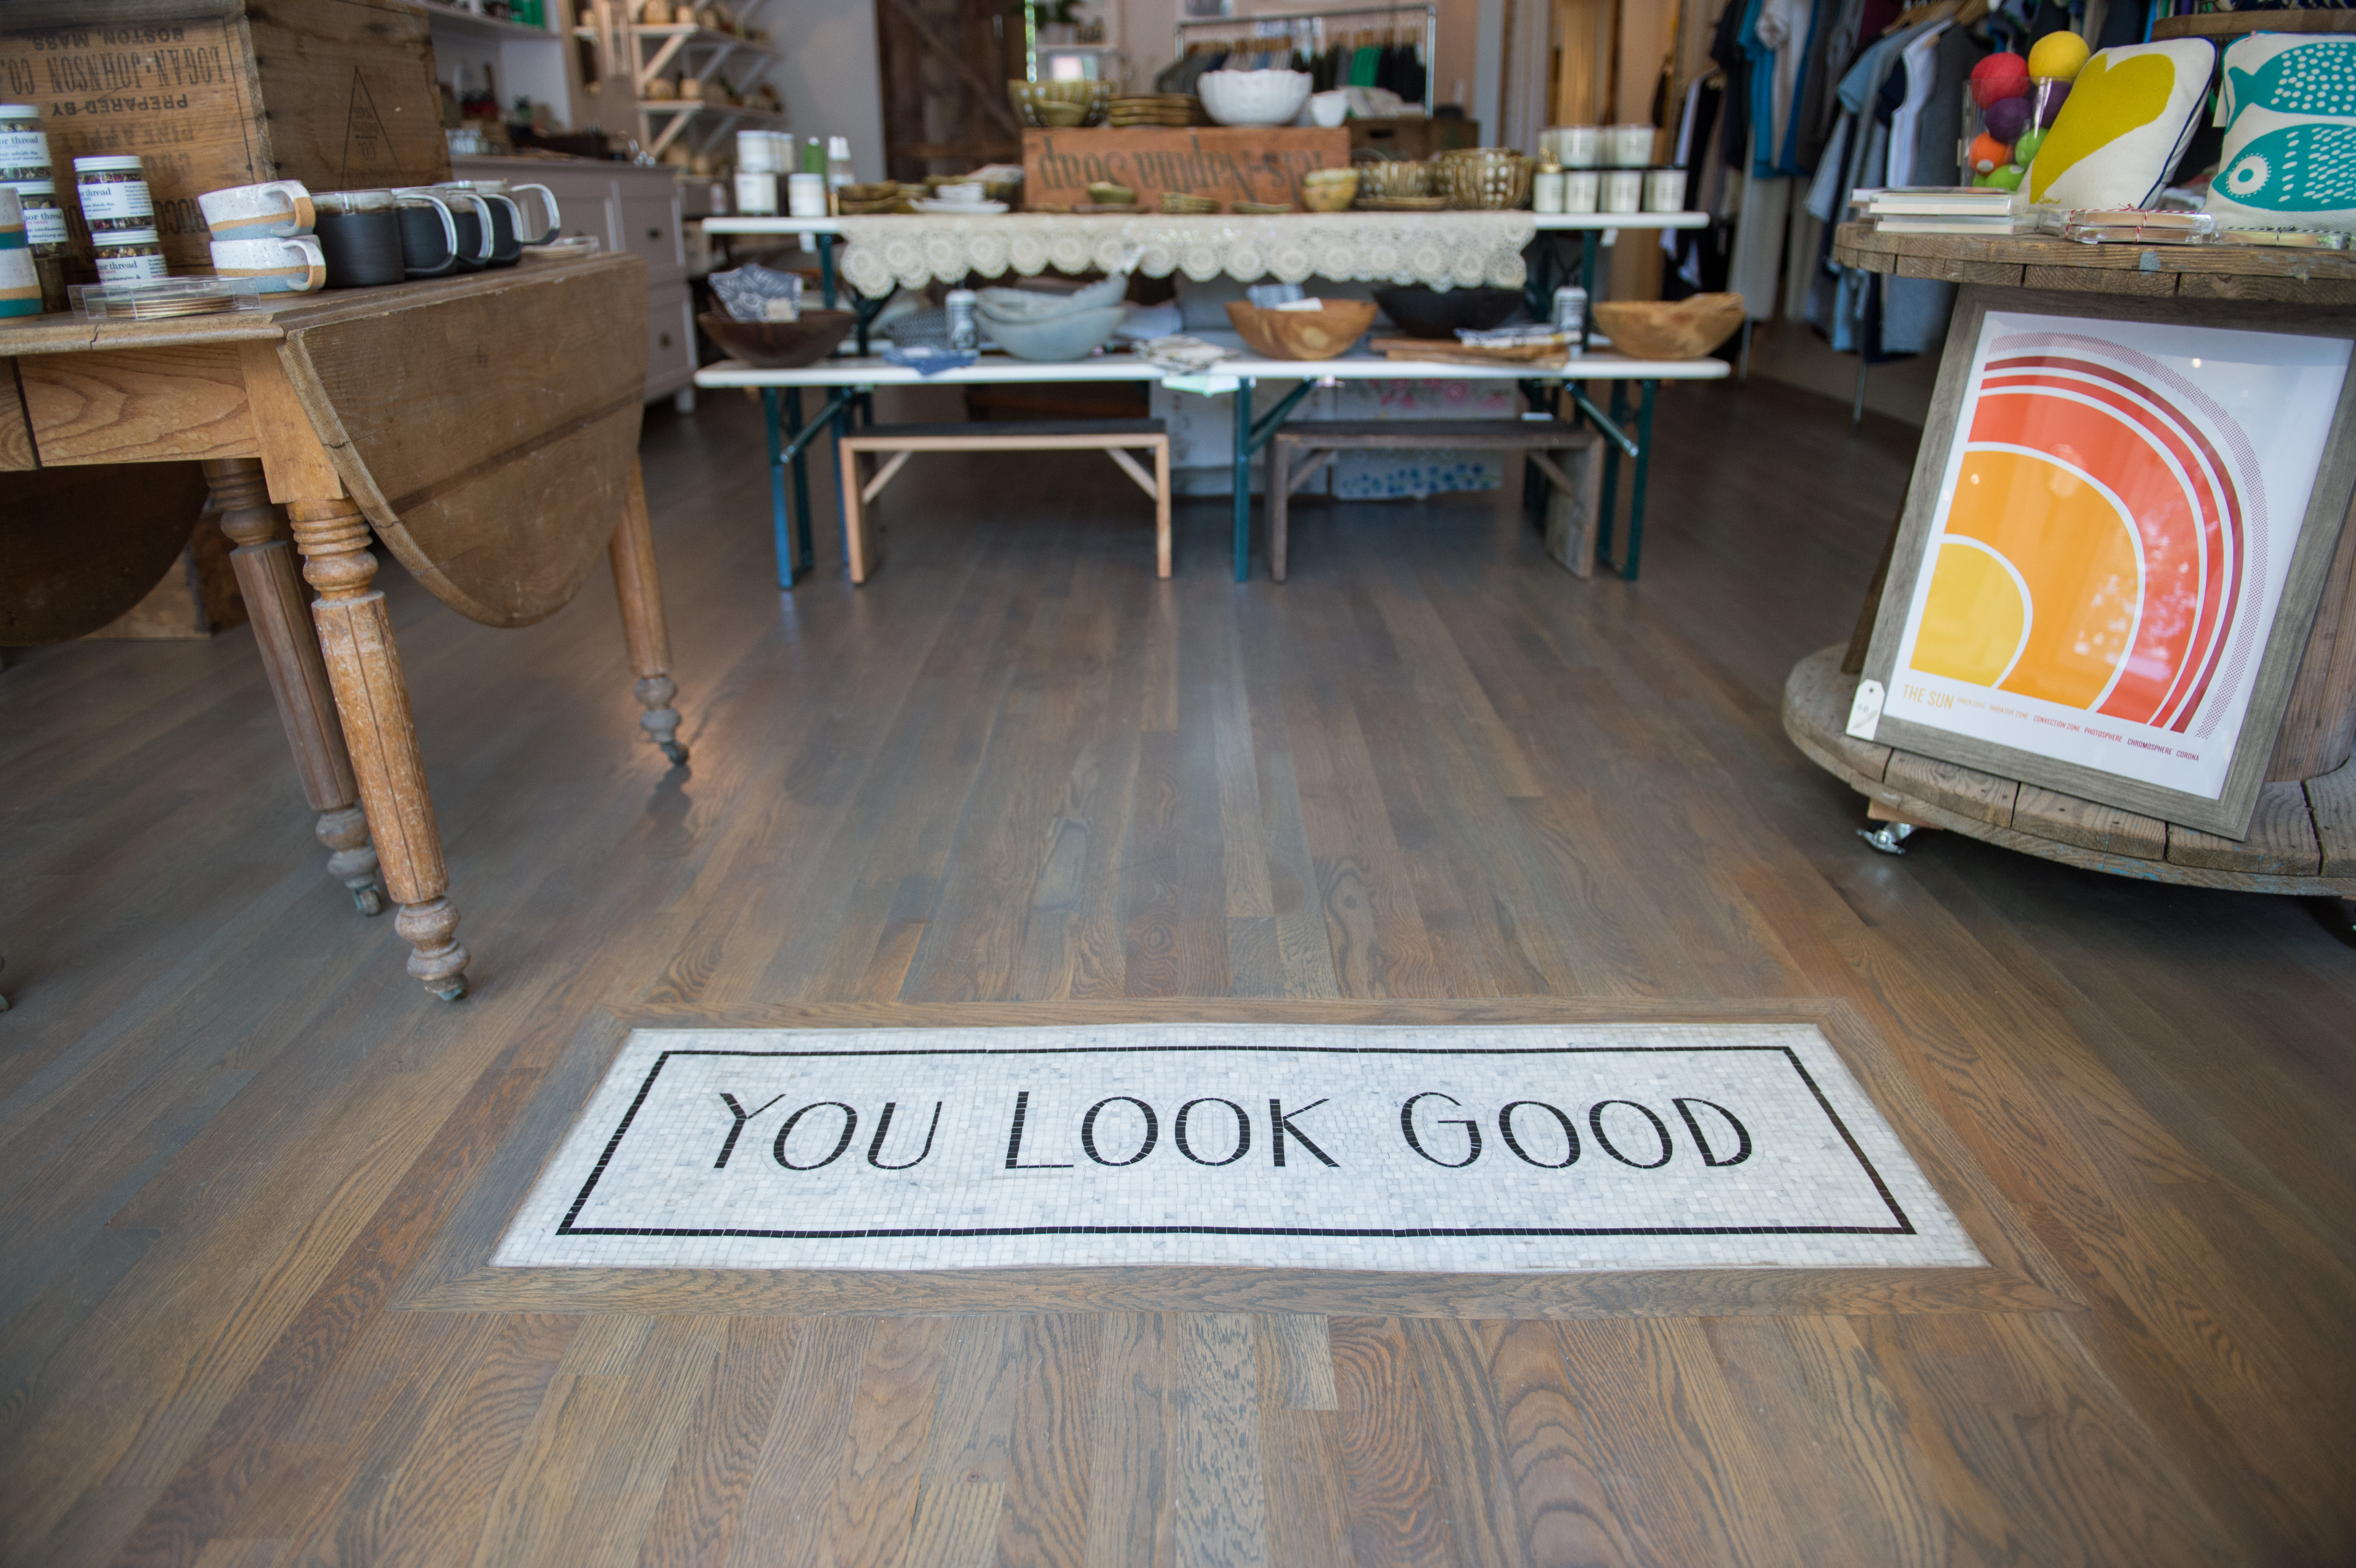 YouLookGood_Entry